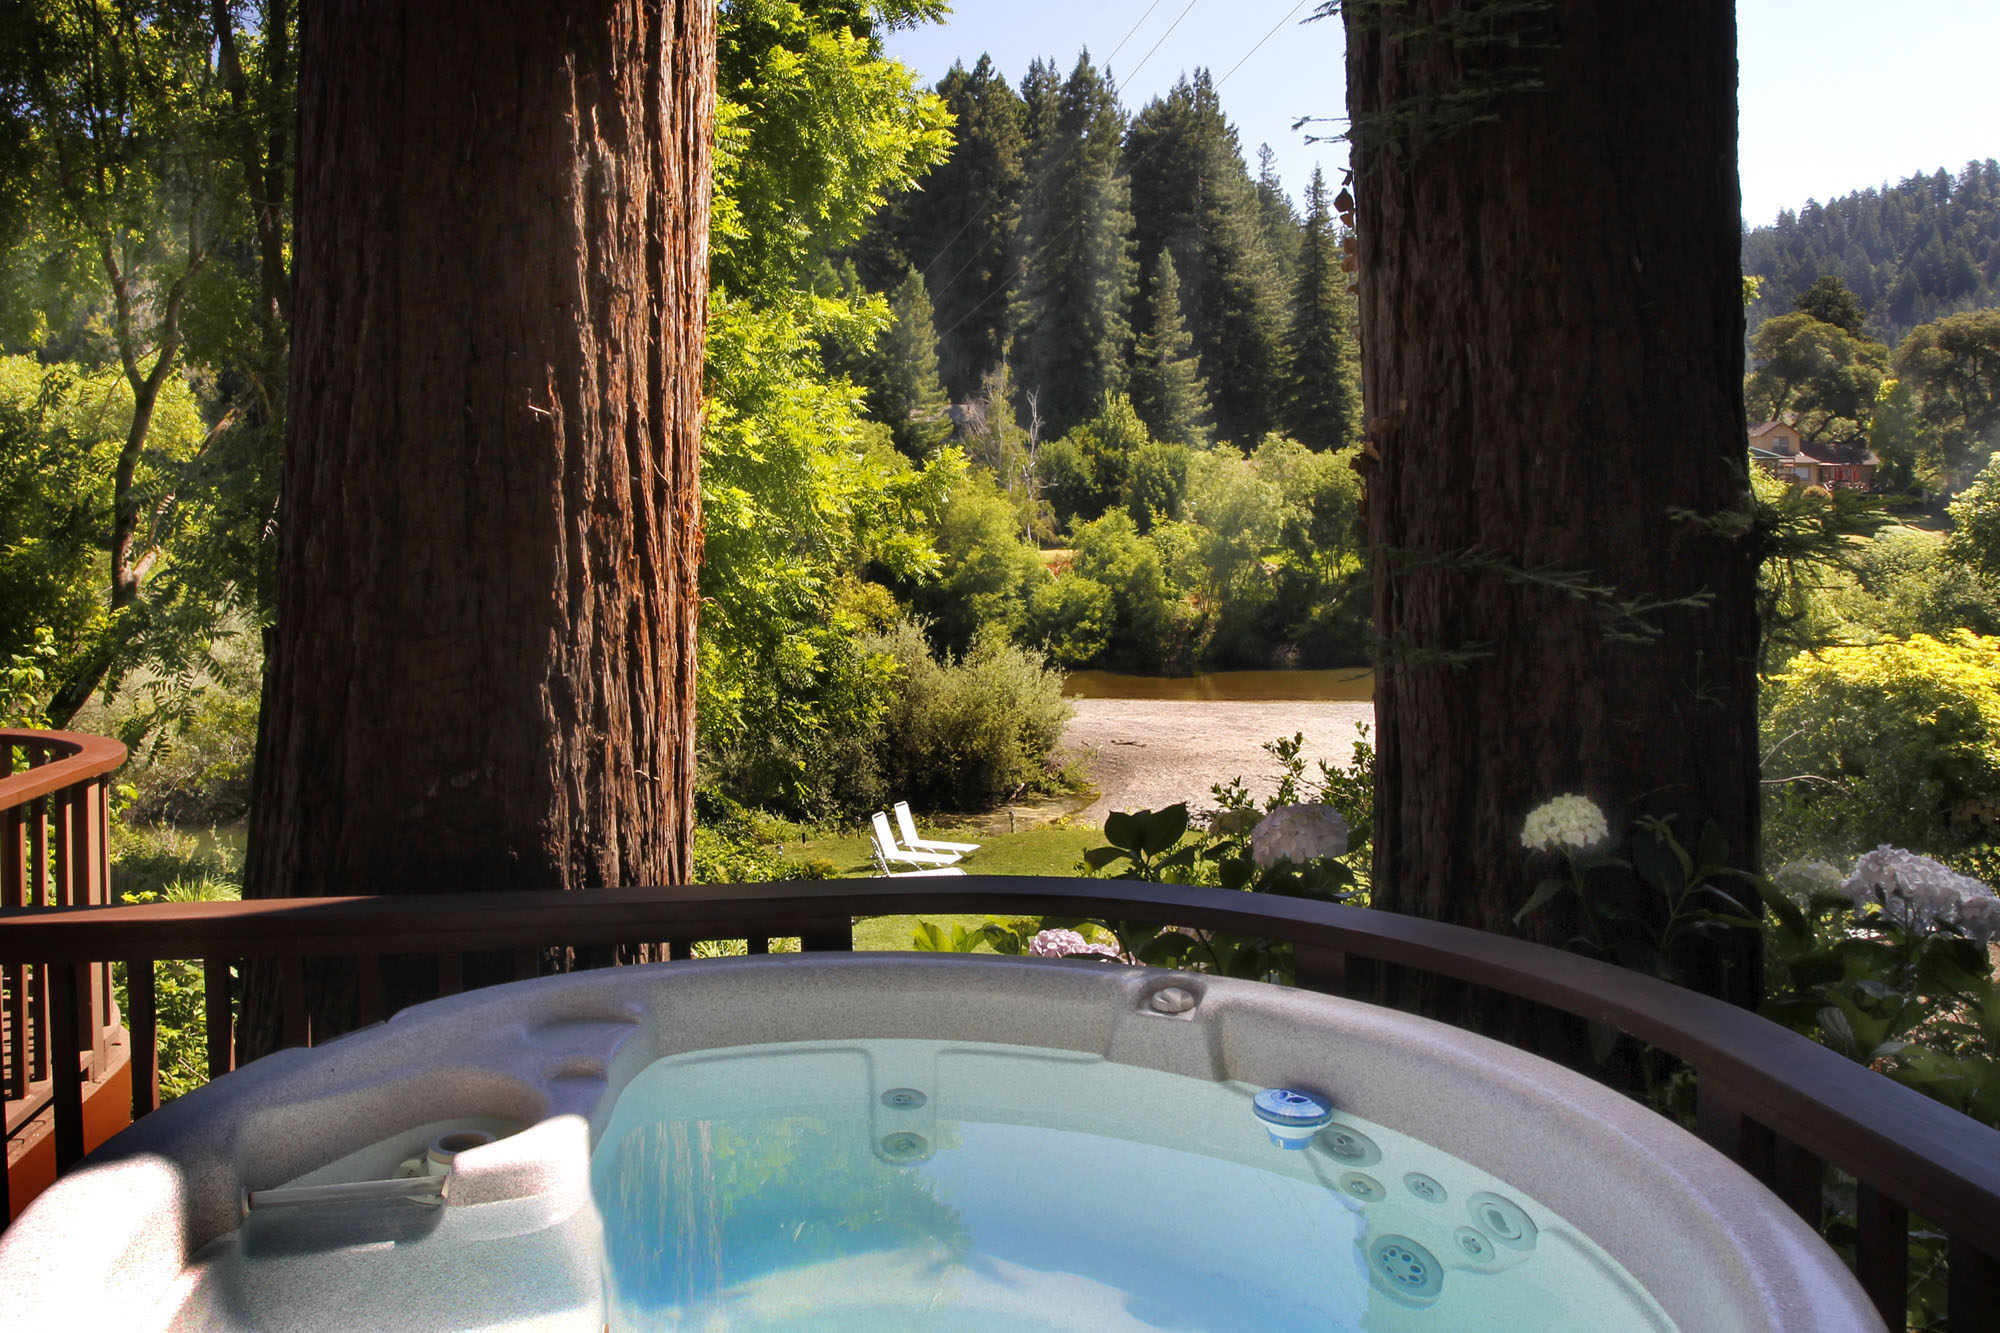 View from Hot Tub to Russian River